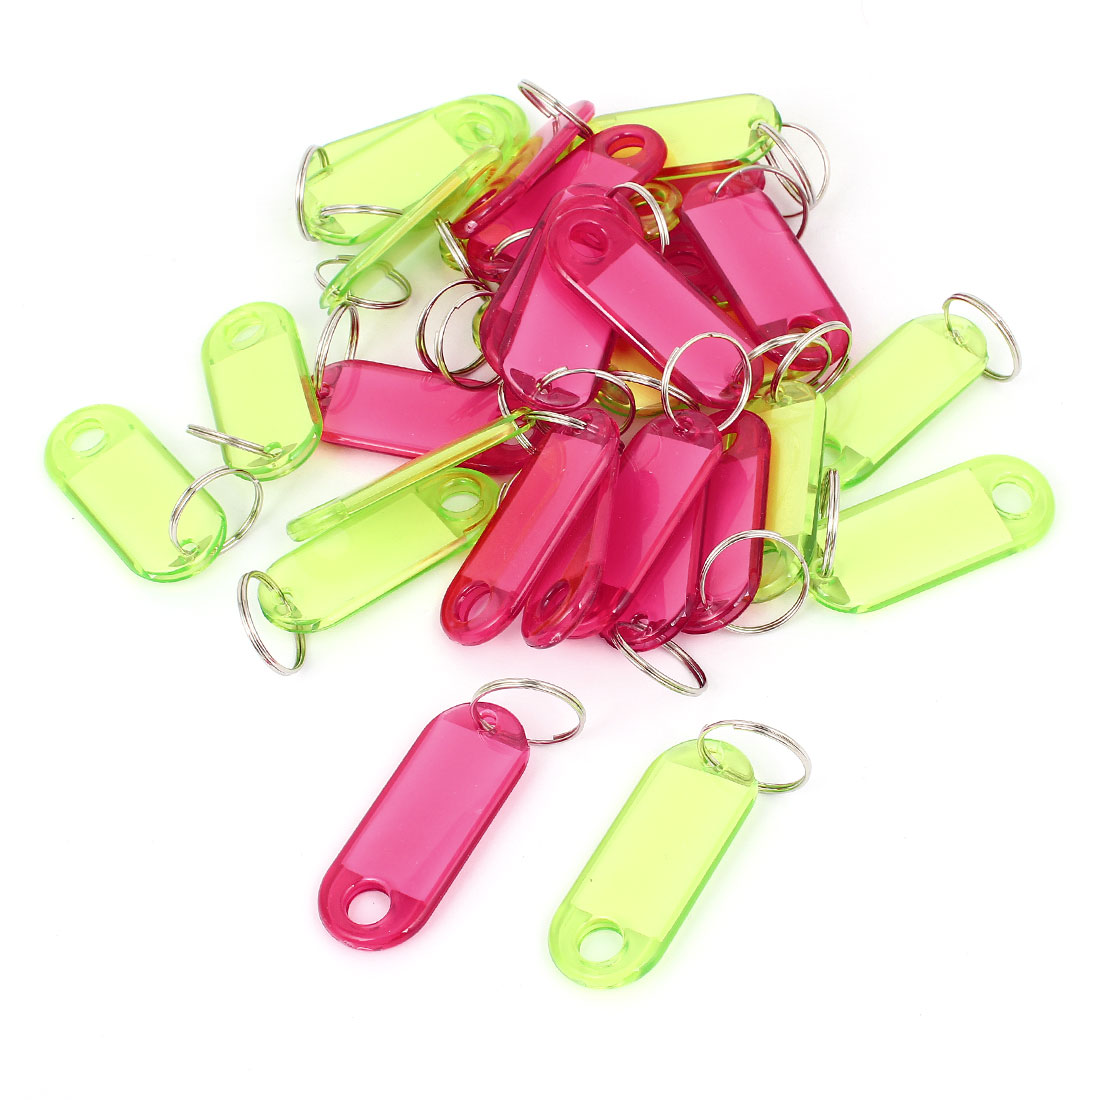 Plastic Key Fobs Luggage ID Label Tag Keyring Keychain Green Red Clear 30 Pcs